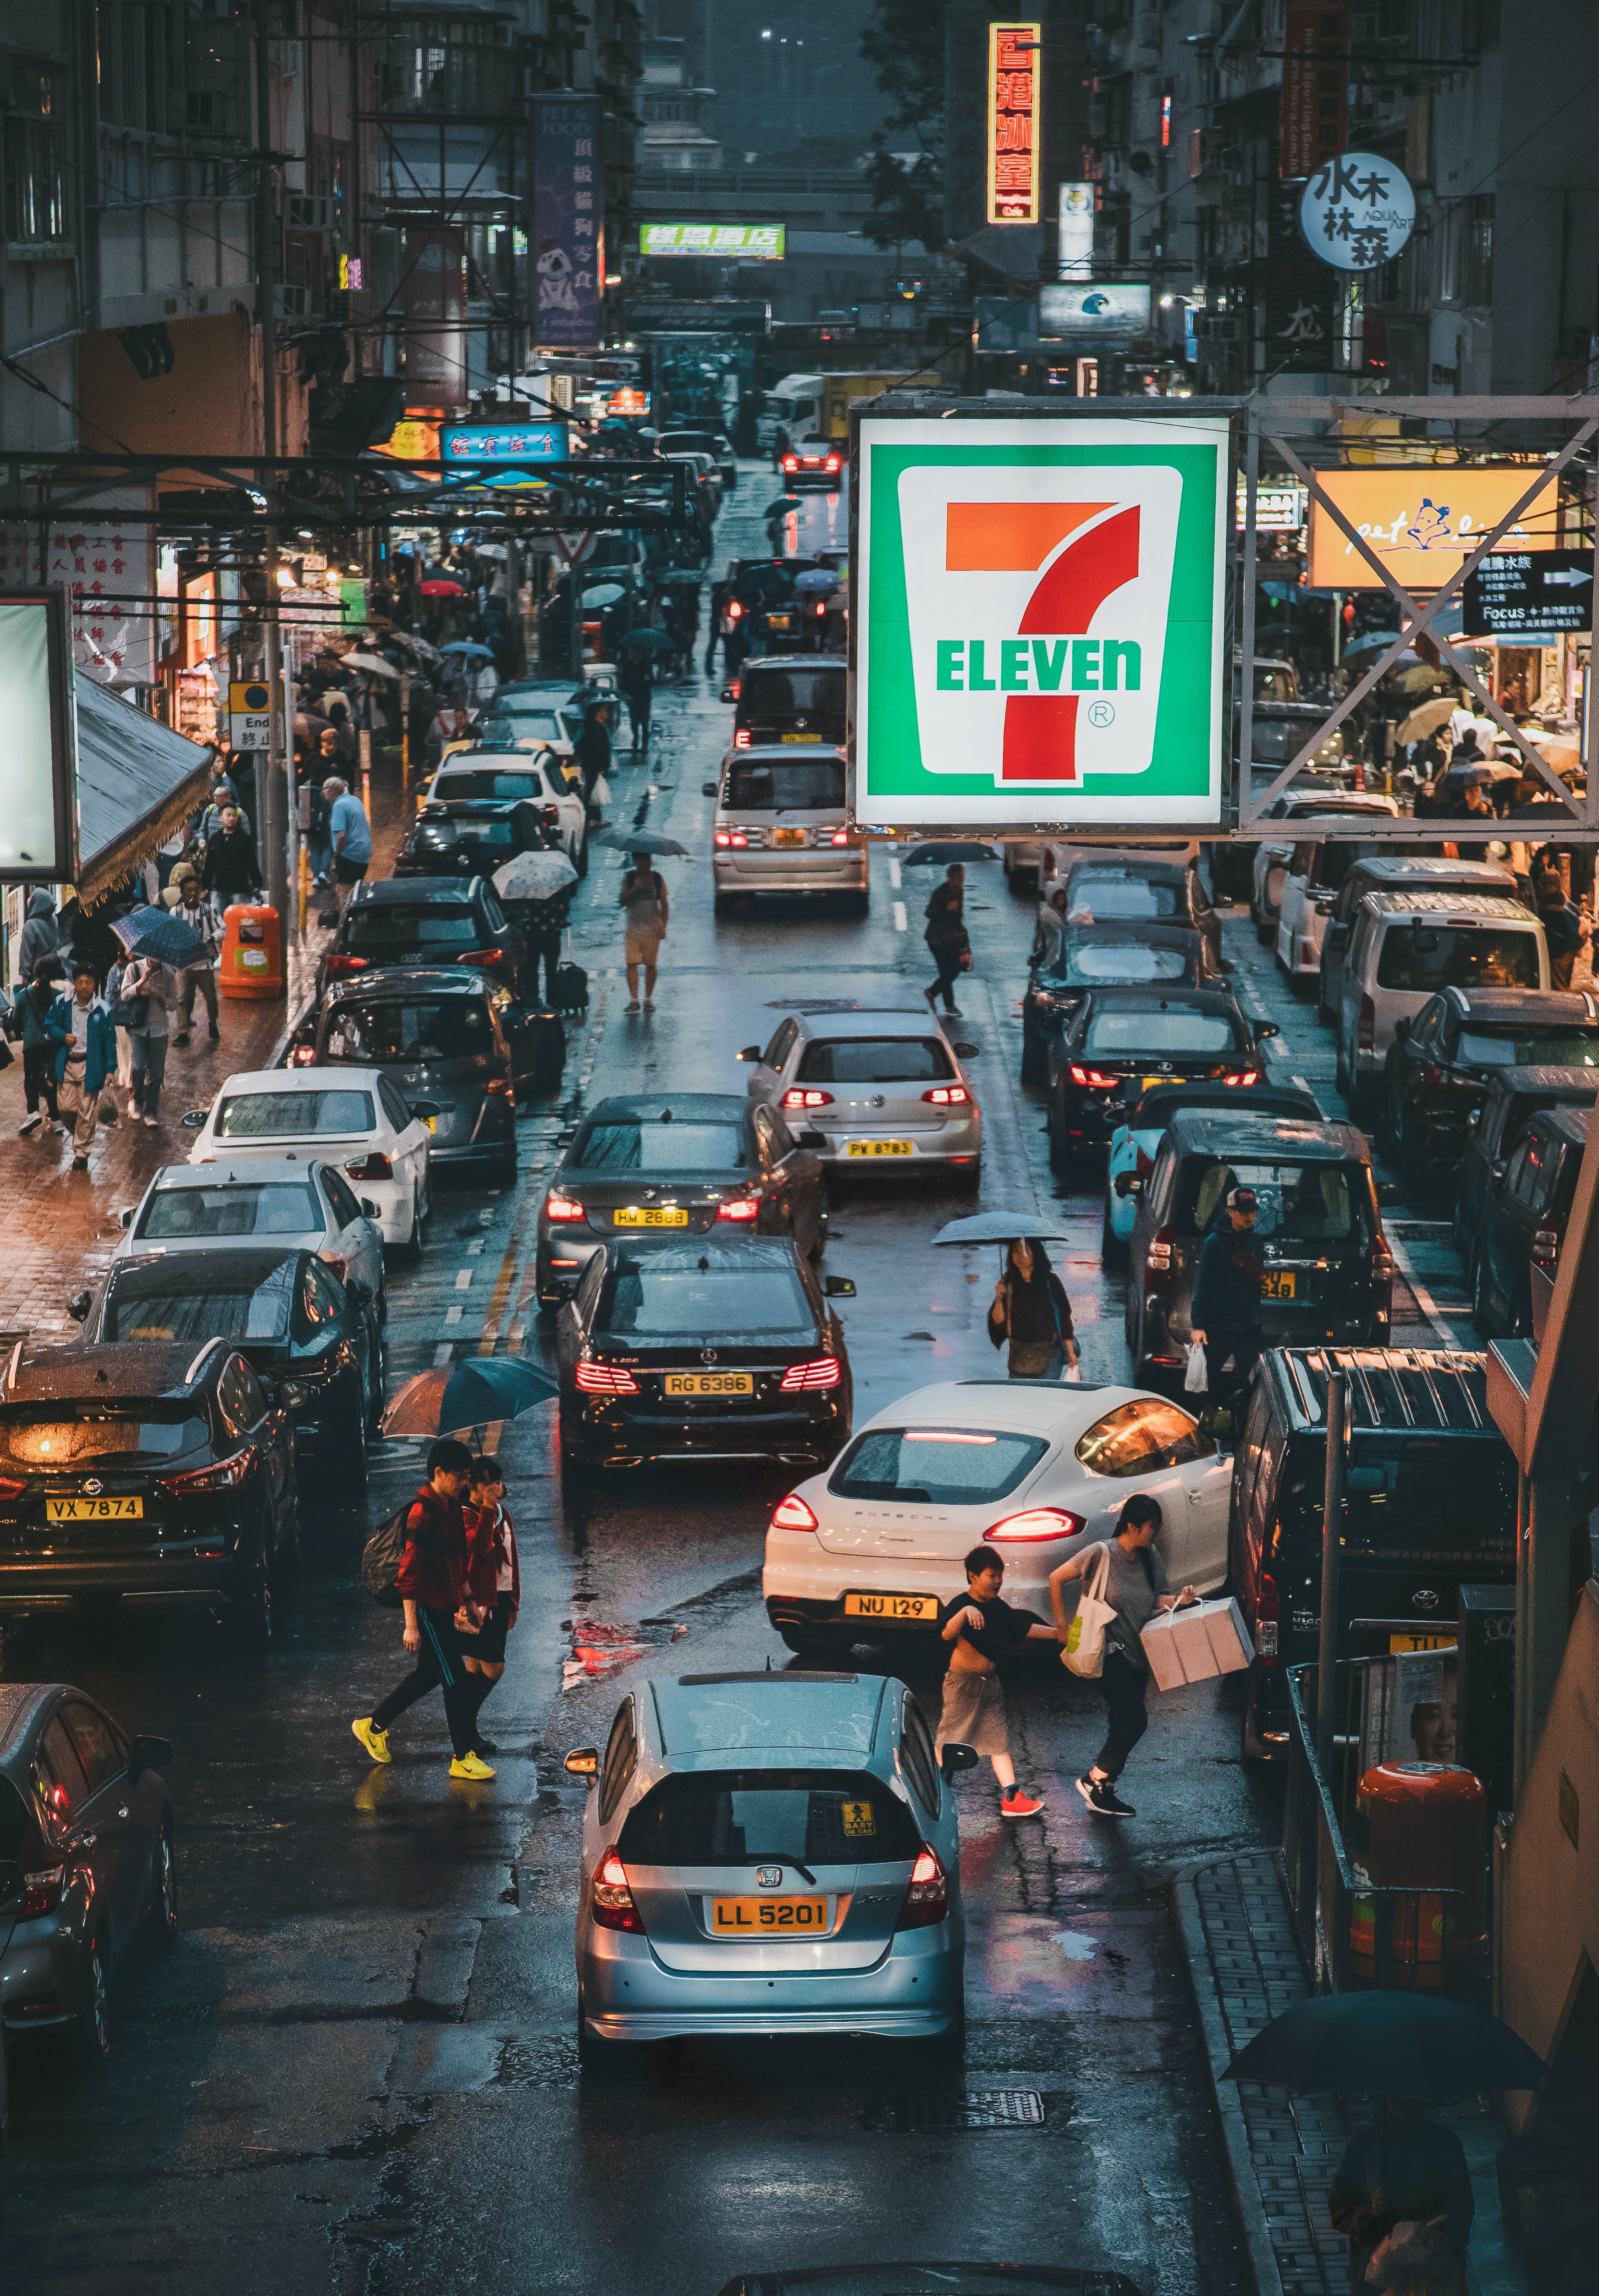 vehicles on road near 7Eleven sign